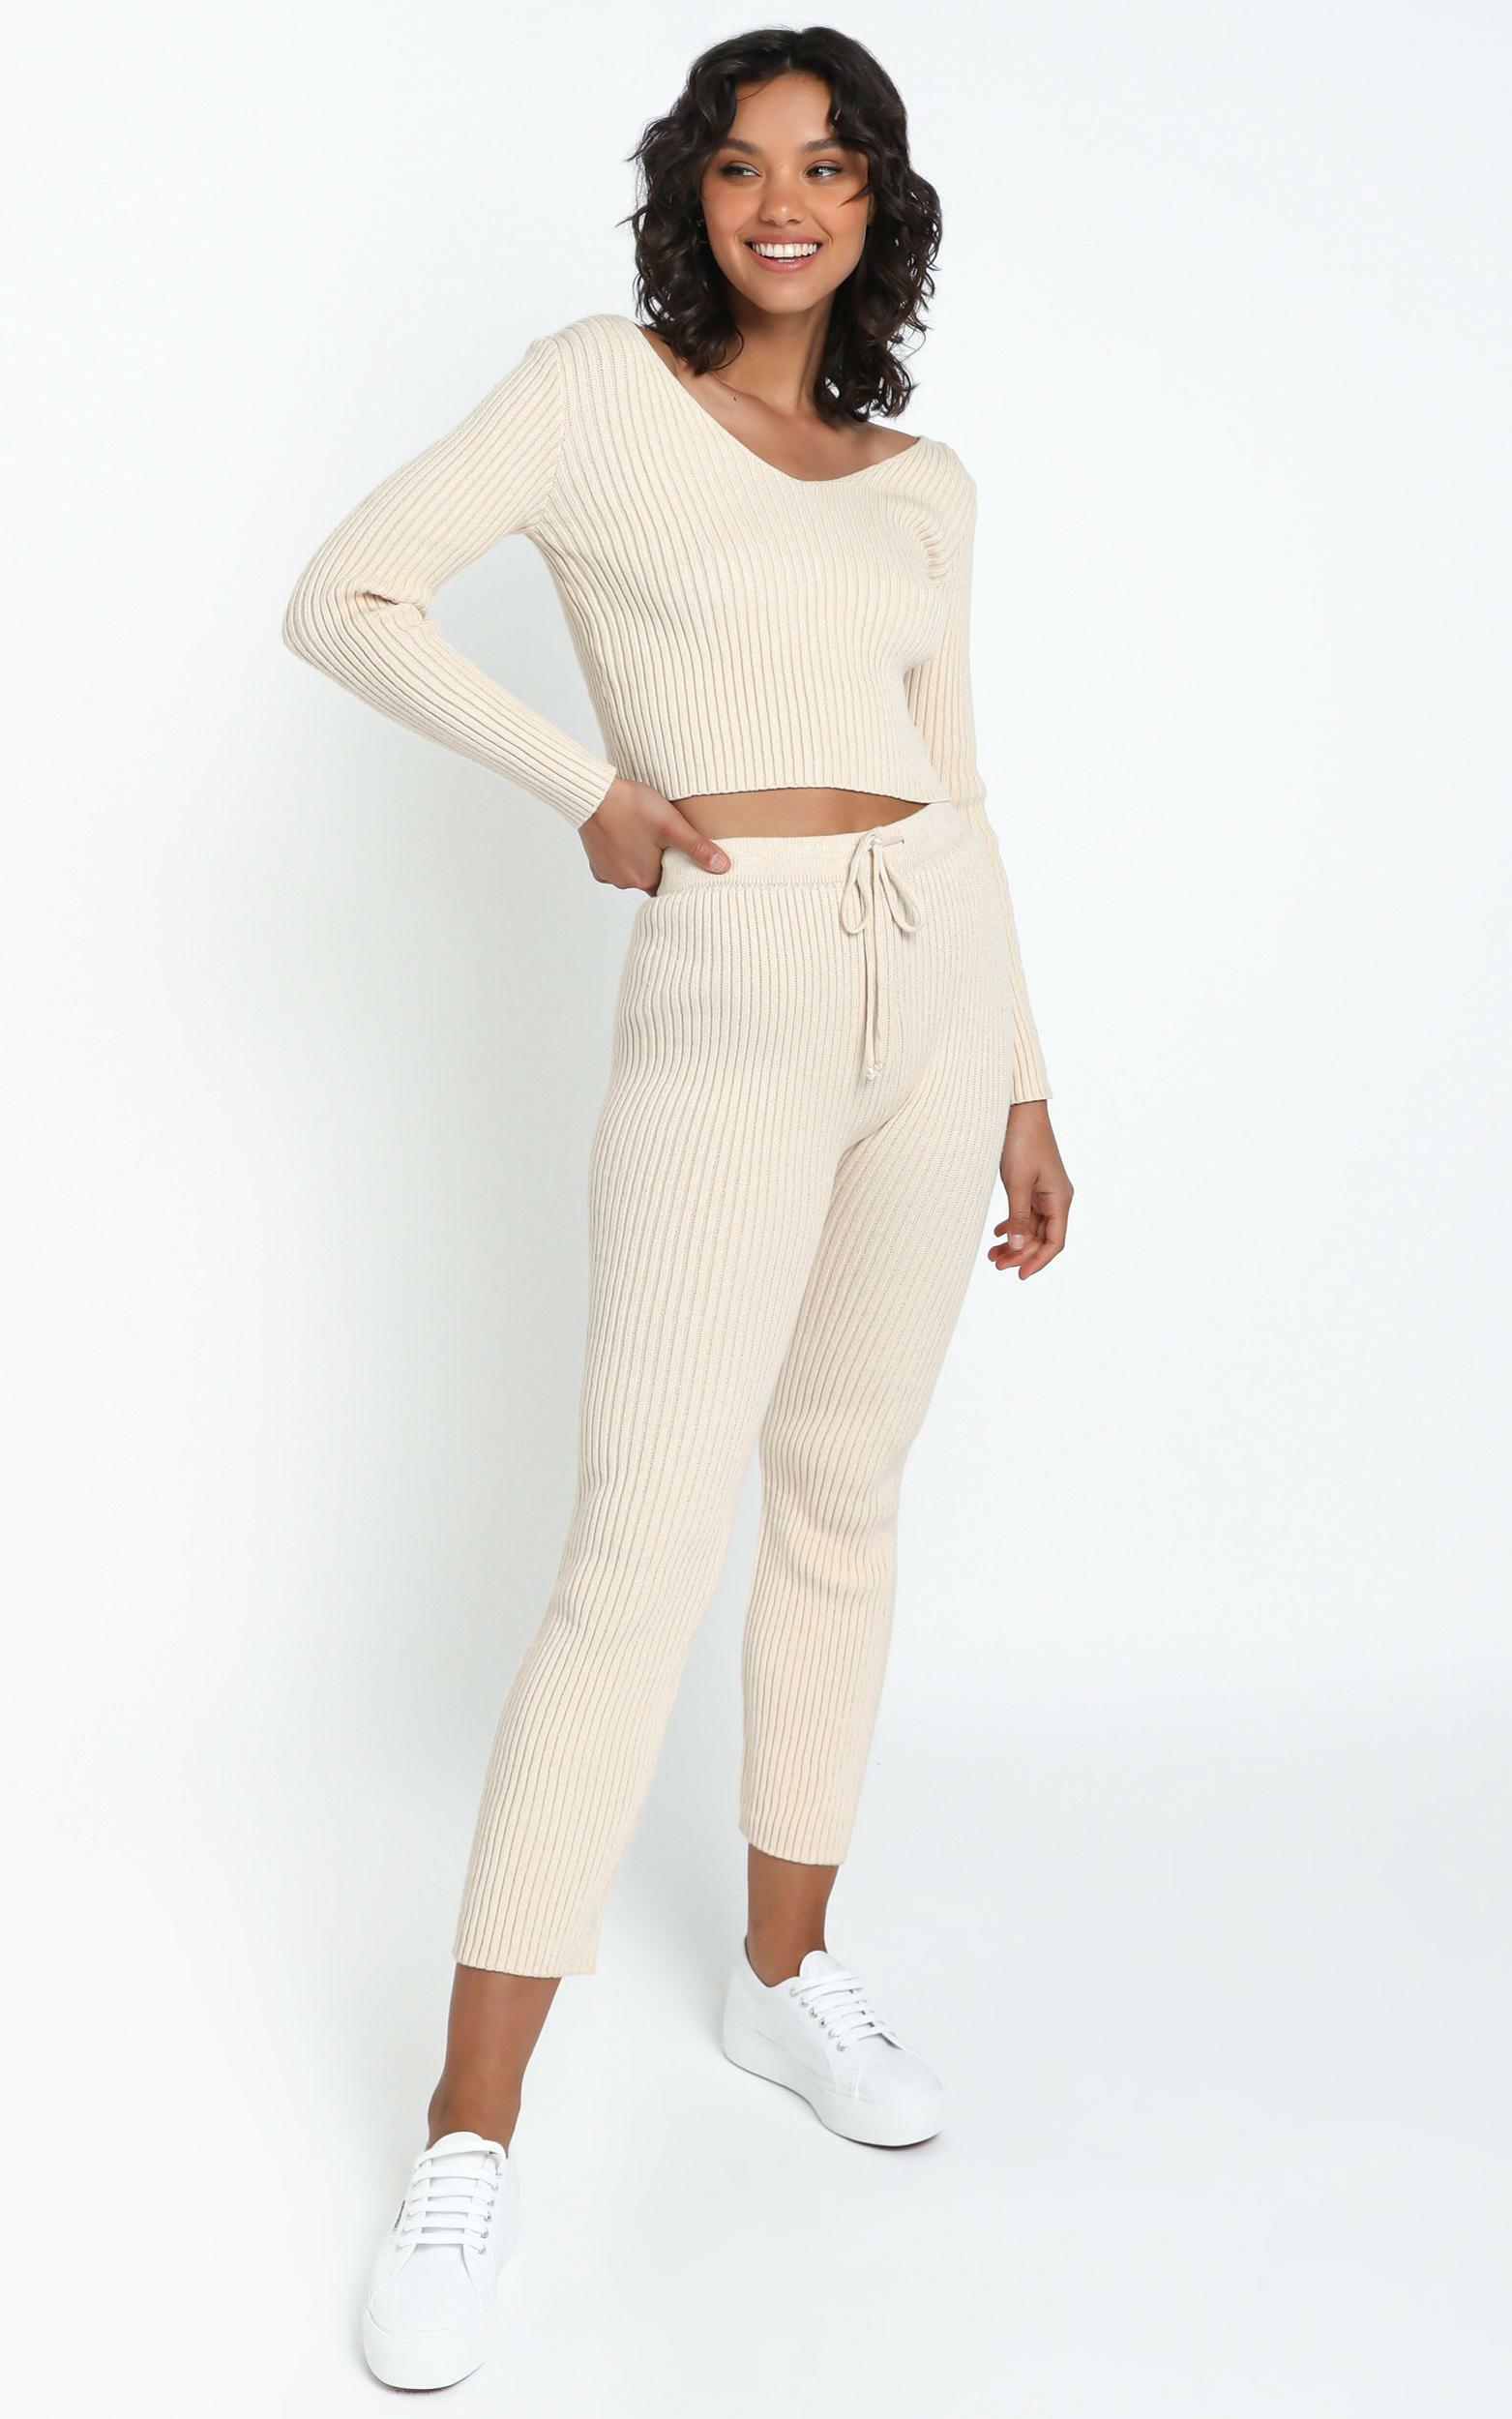 Gweneth Knit Pants in Beige - 12 (L), Cream, hi-res image number null